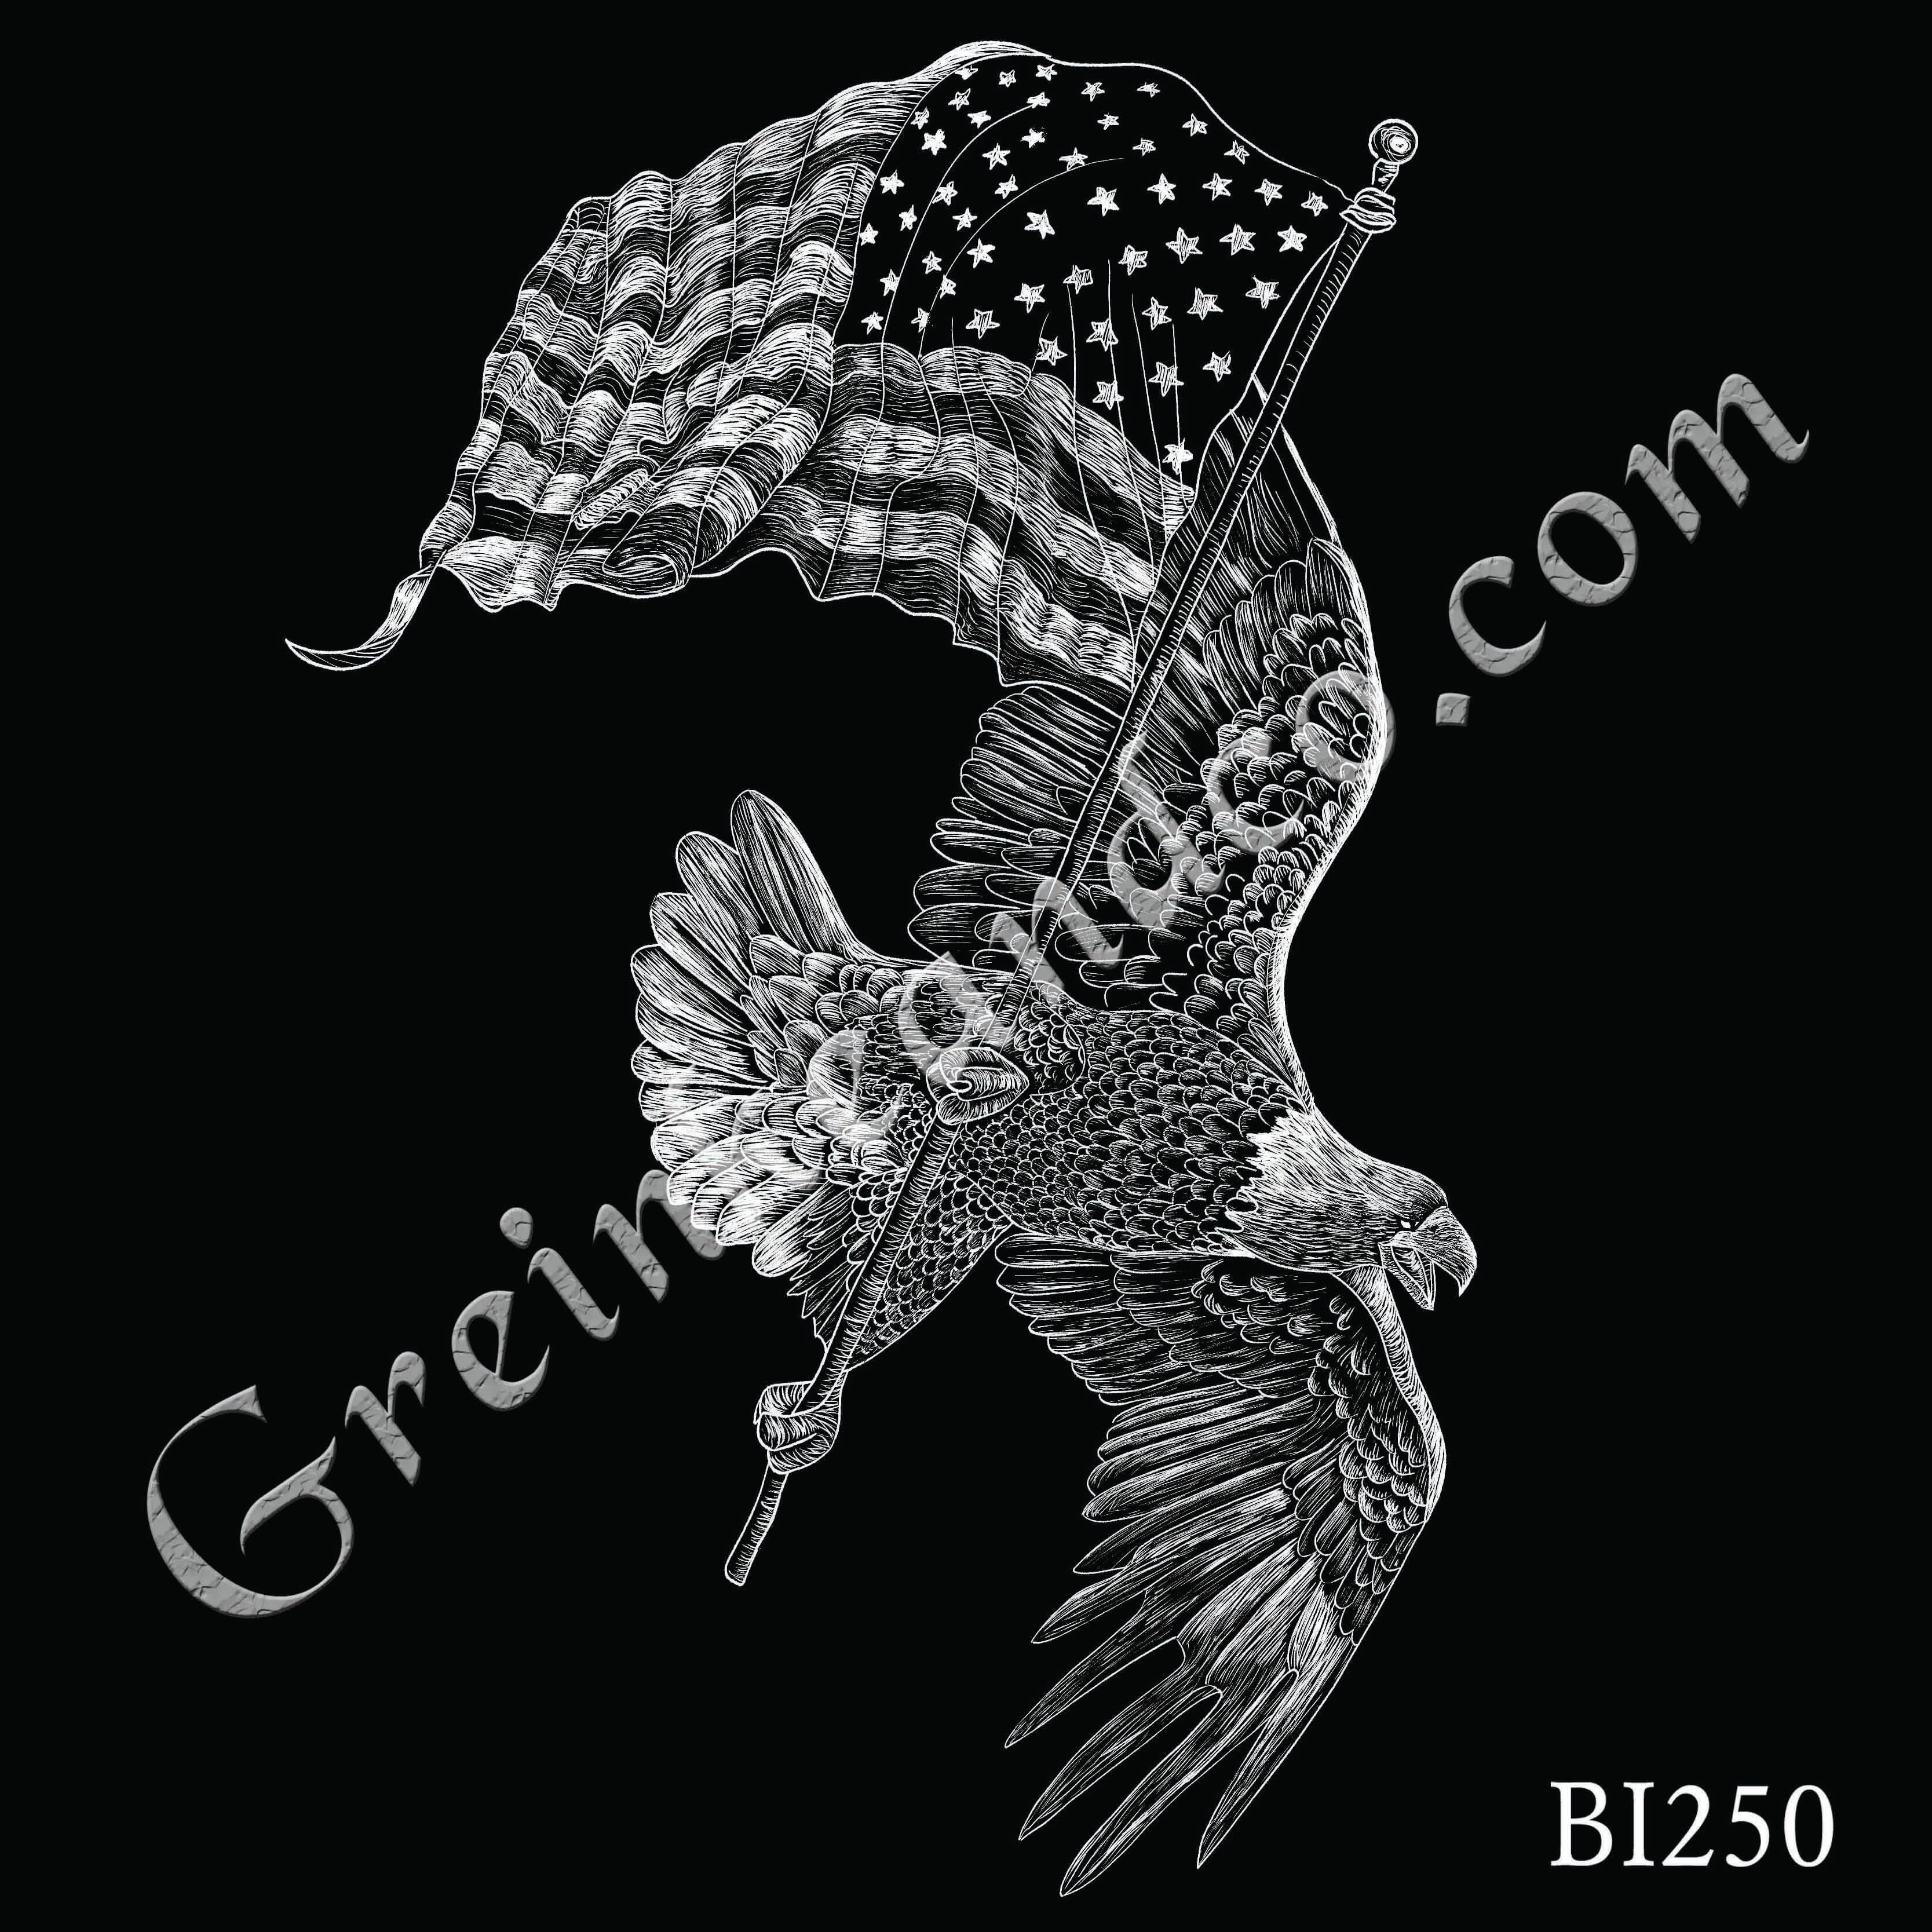 BI250 - Eagle and Flag